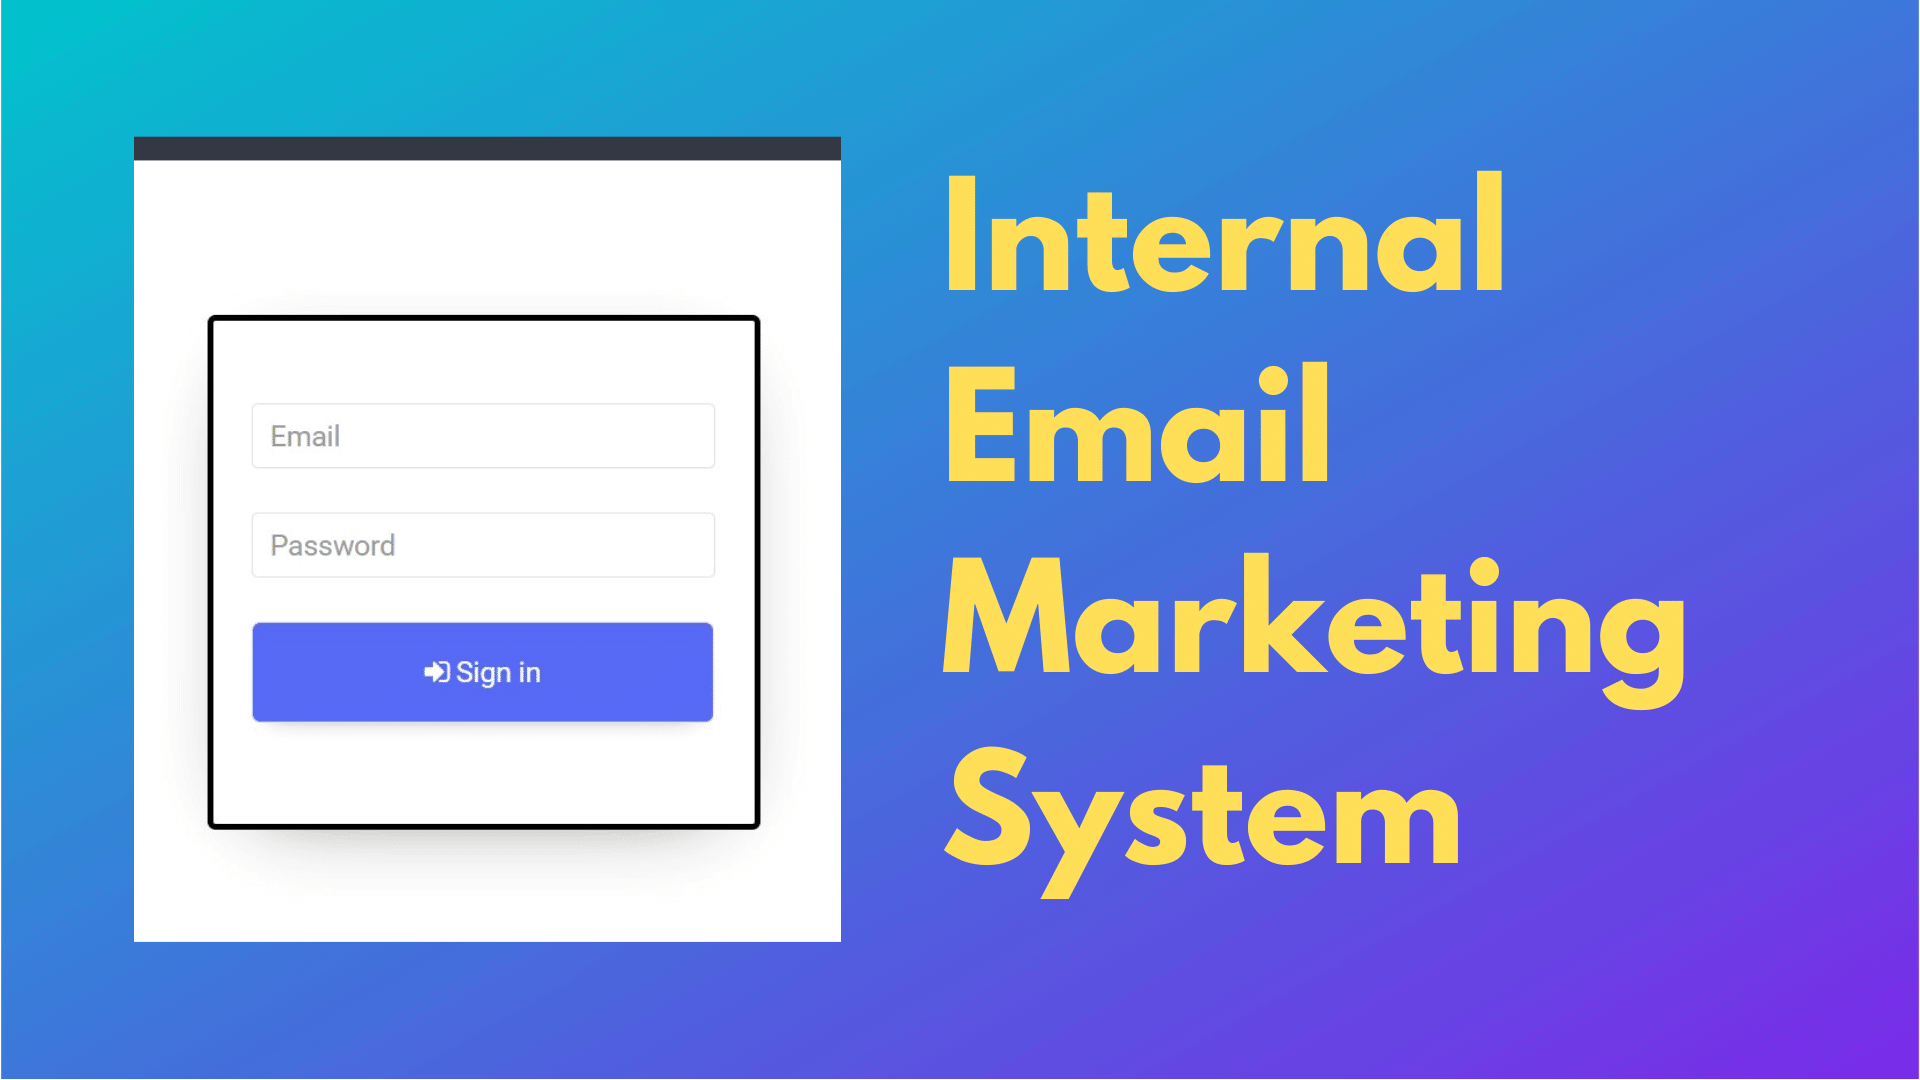 Internal Email Marketing System